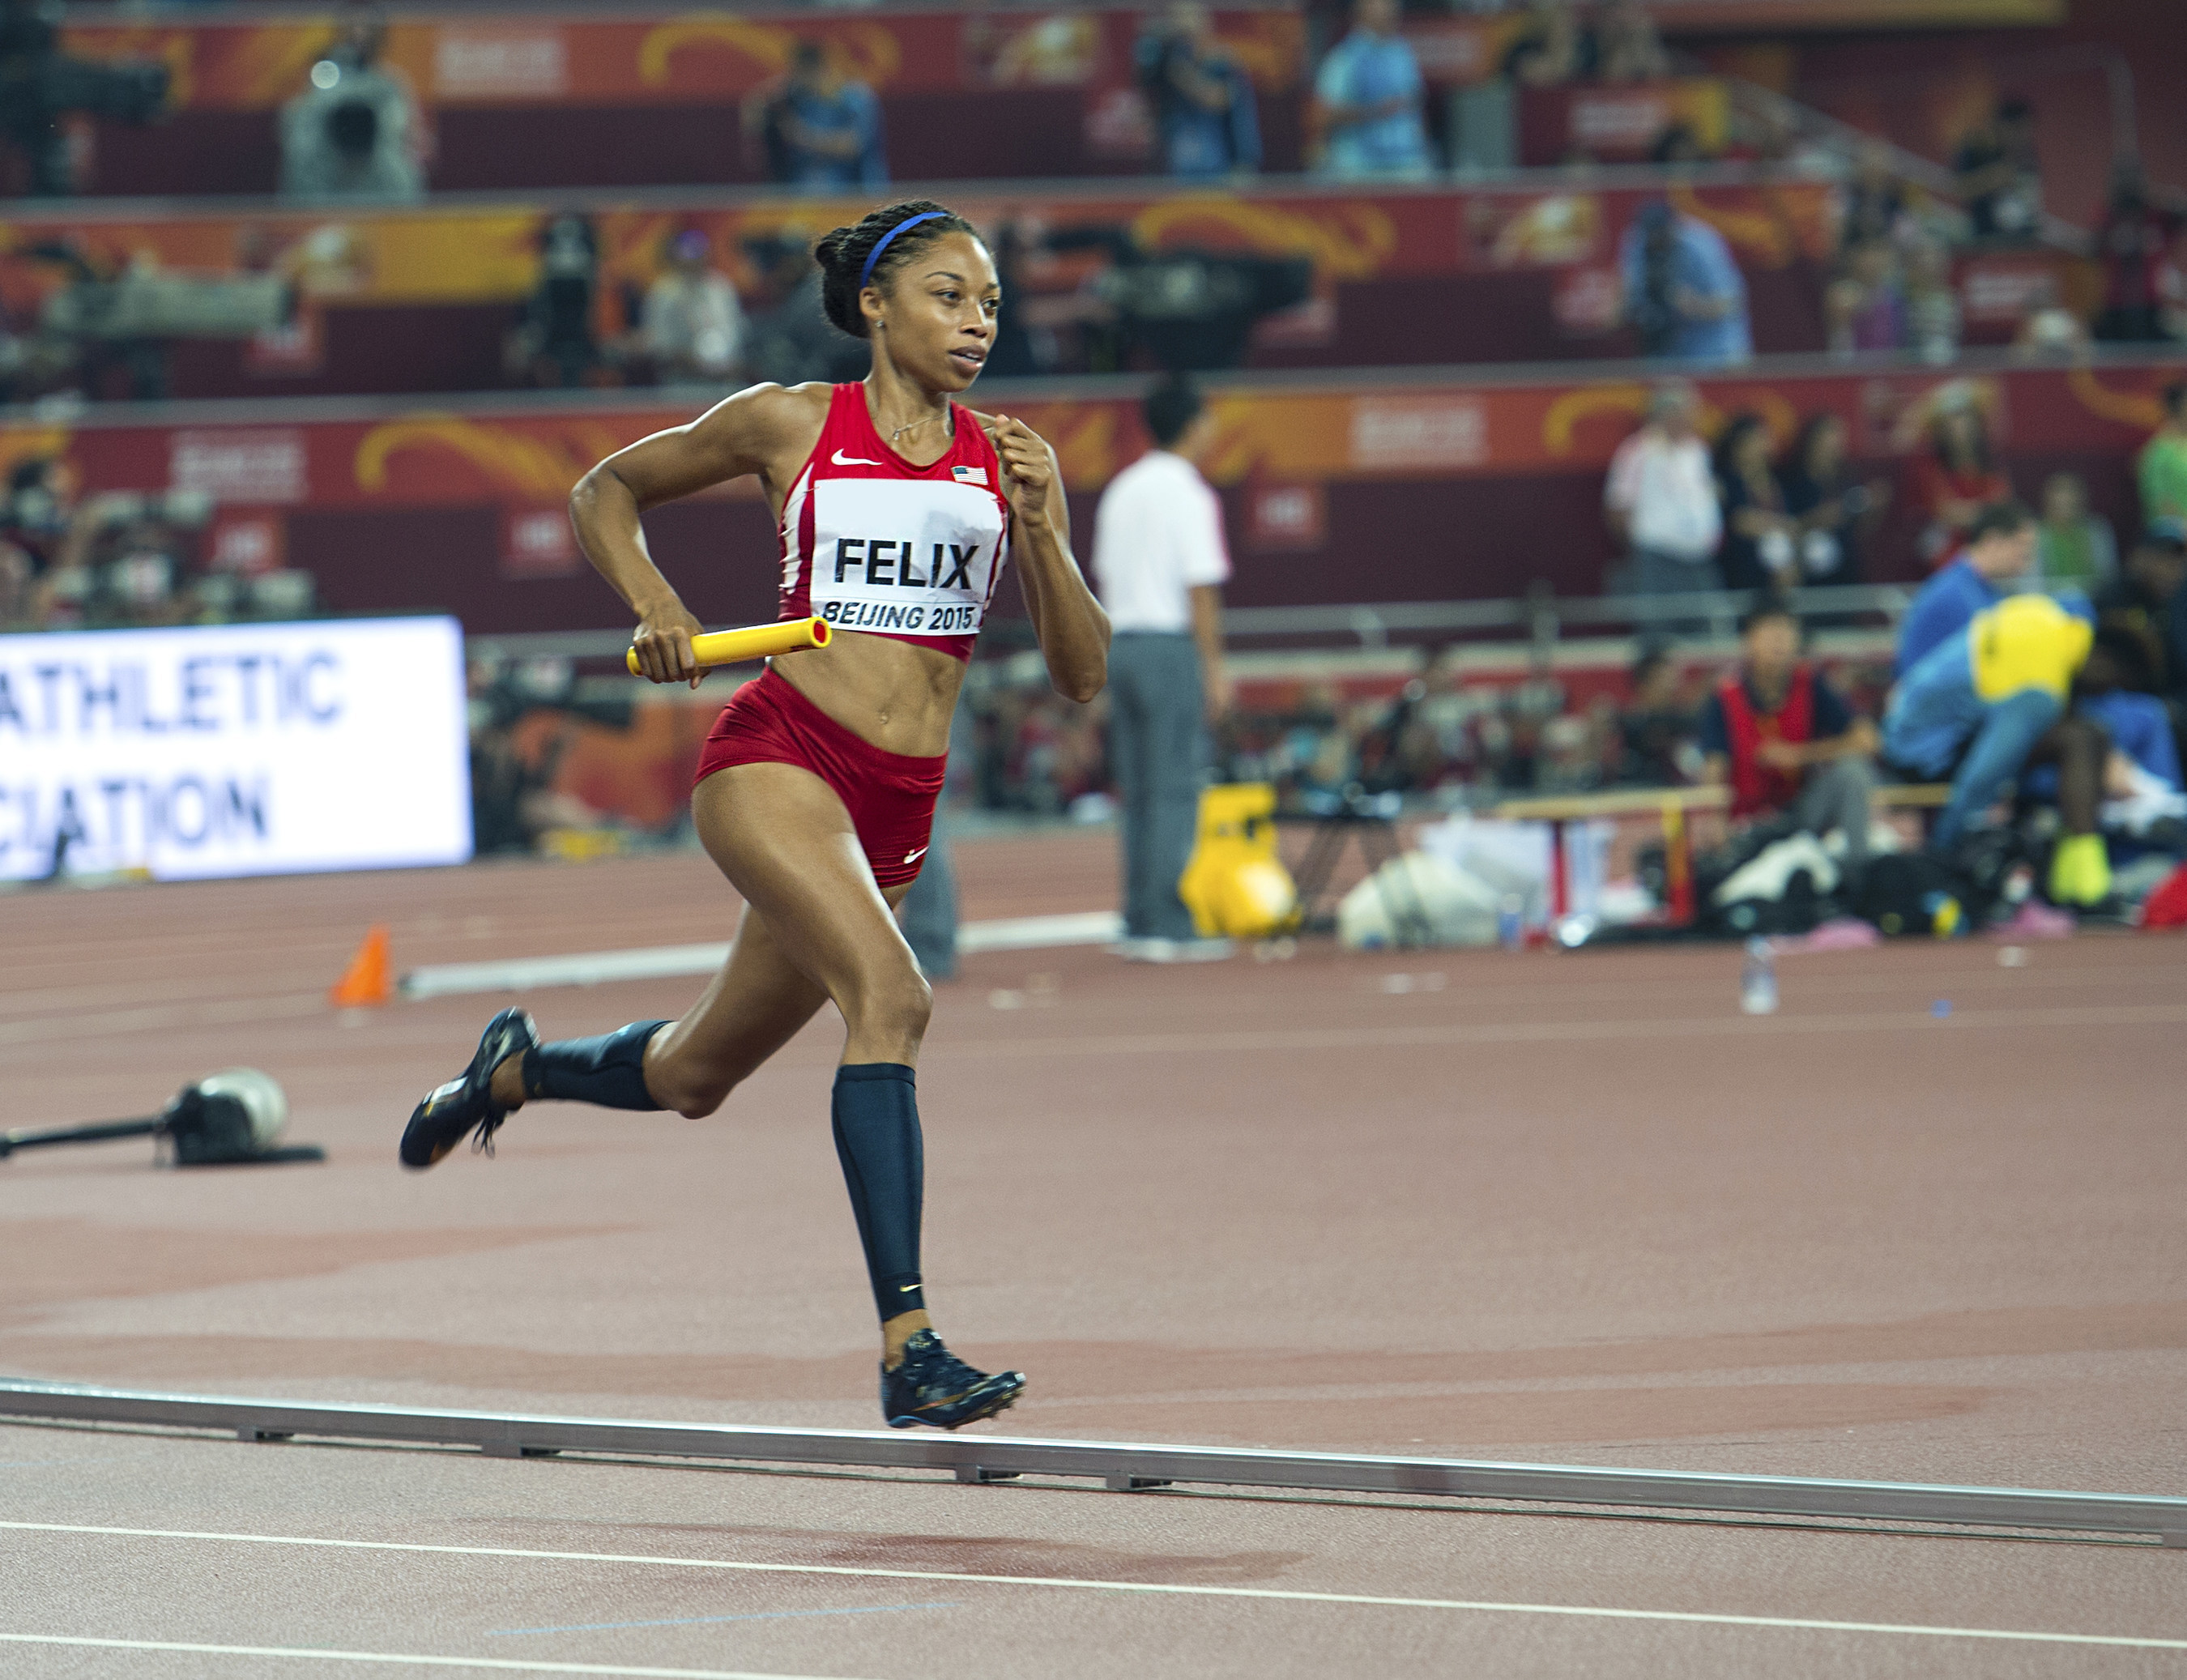 Allyson Felix is the newest member of Team Wheaties, joining a 90-year legacy of world-class athletes. Allyson has proven herself a strong champion as one of the most decorated sprinters in U.S. history.